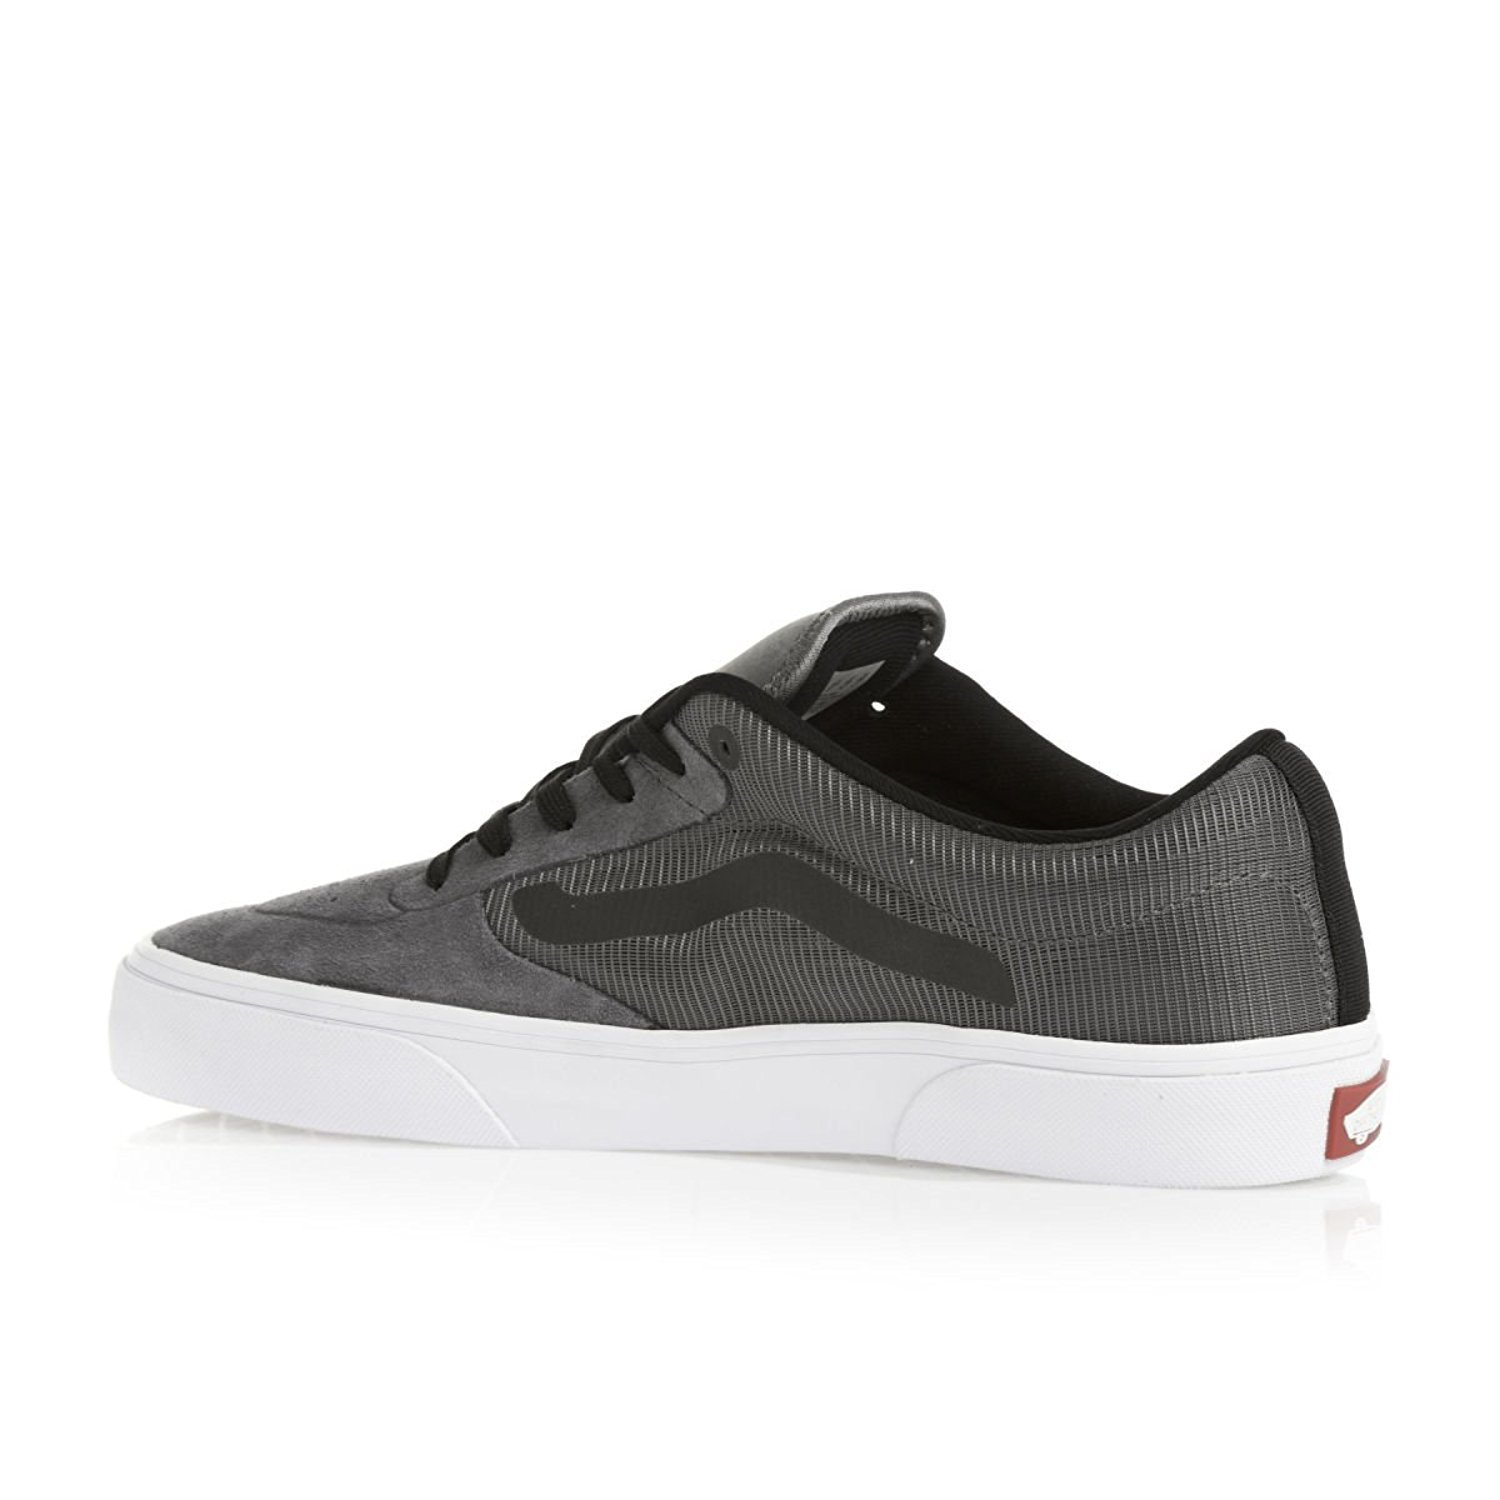 d766635d95 Buy Vans Rowley Pro Lite (Pewter) Mens Skate Shoes Online at Low Prices in  India - Amazon.in